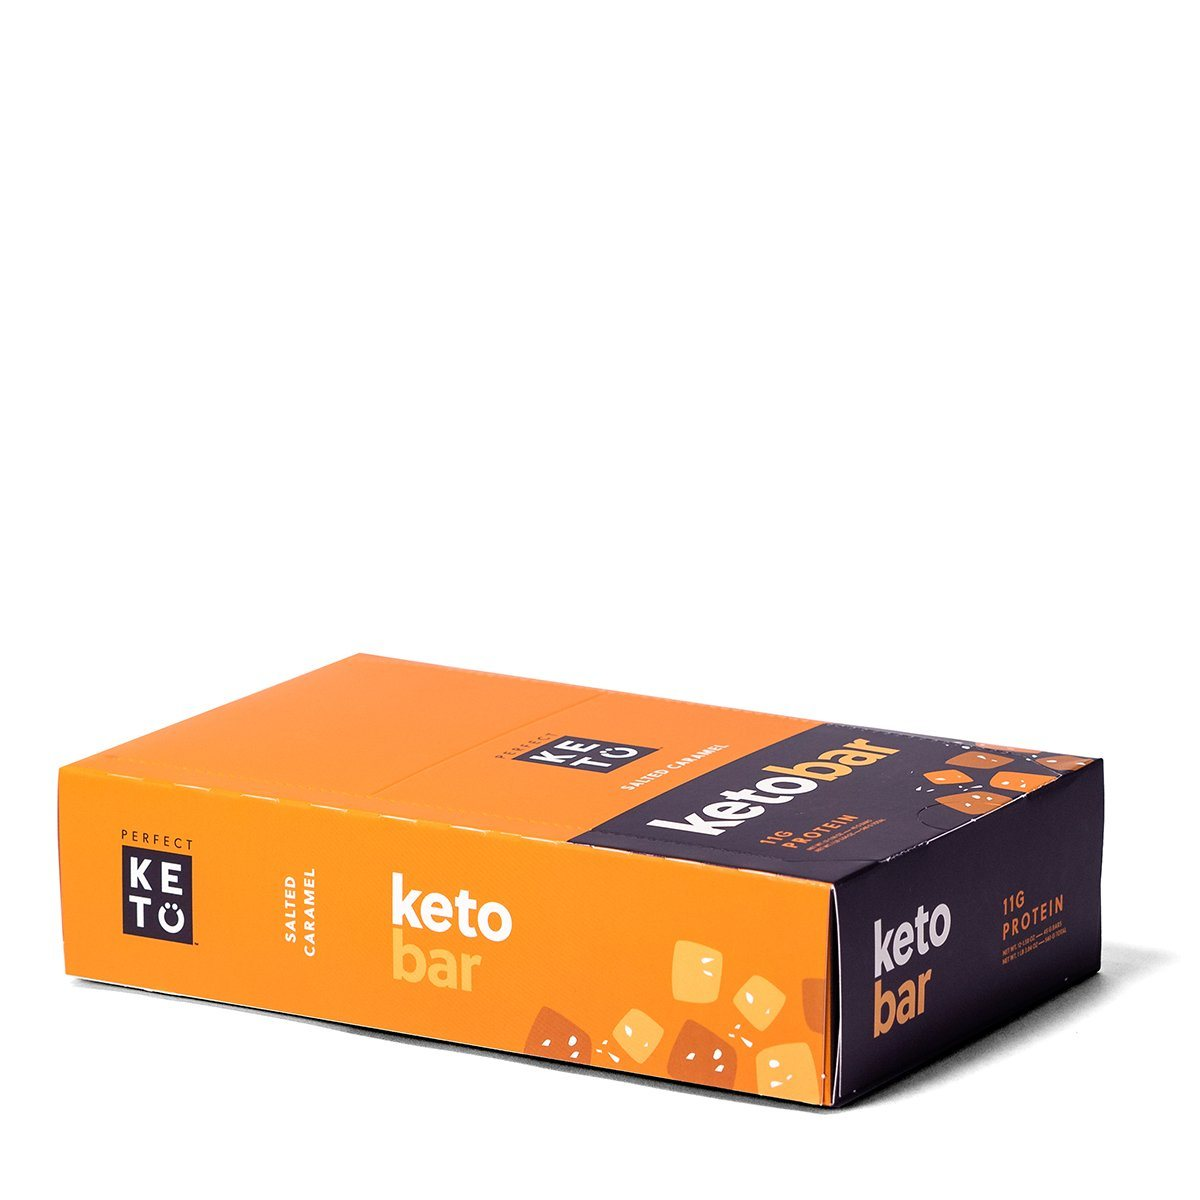 salted caramel keto bars in a caramel colored box